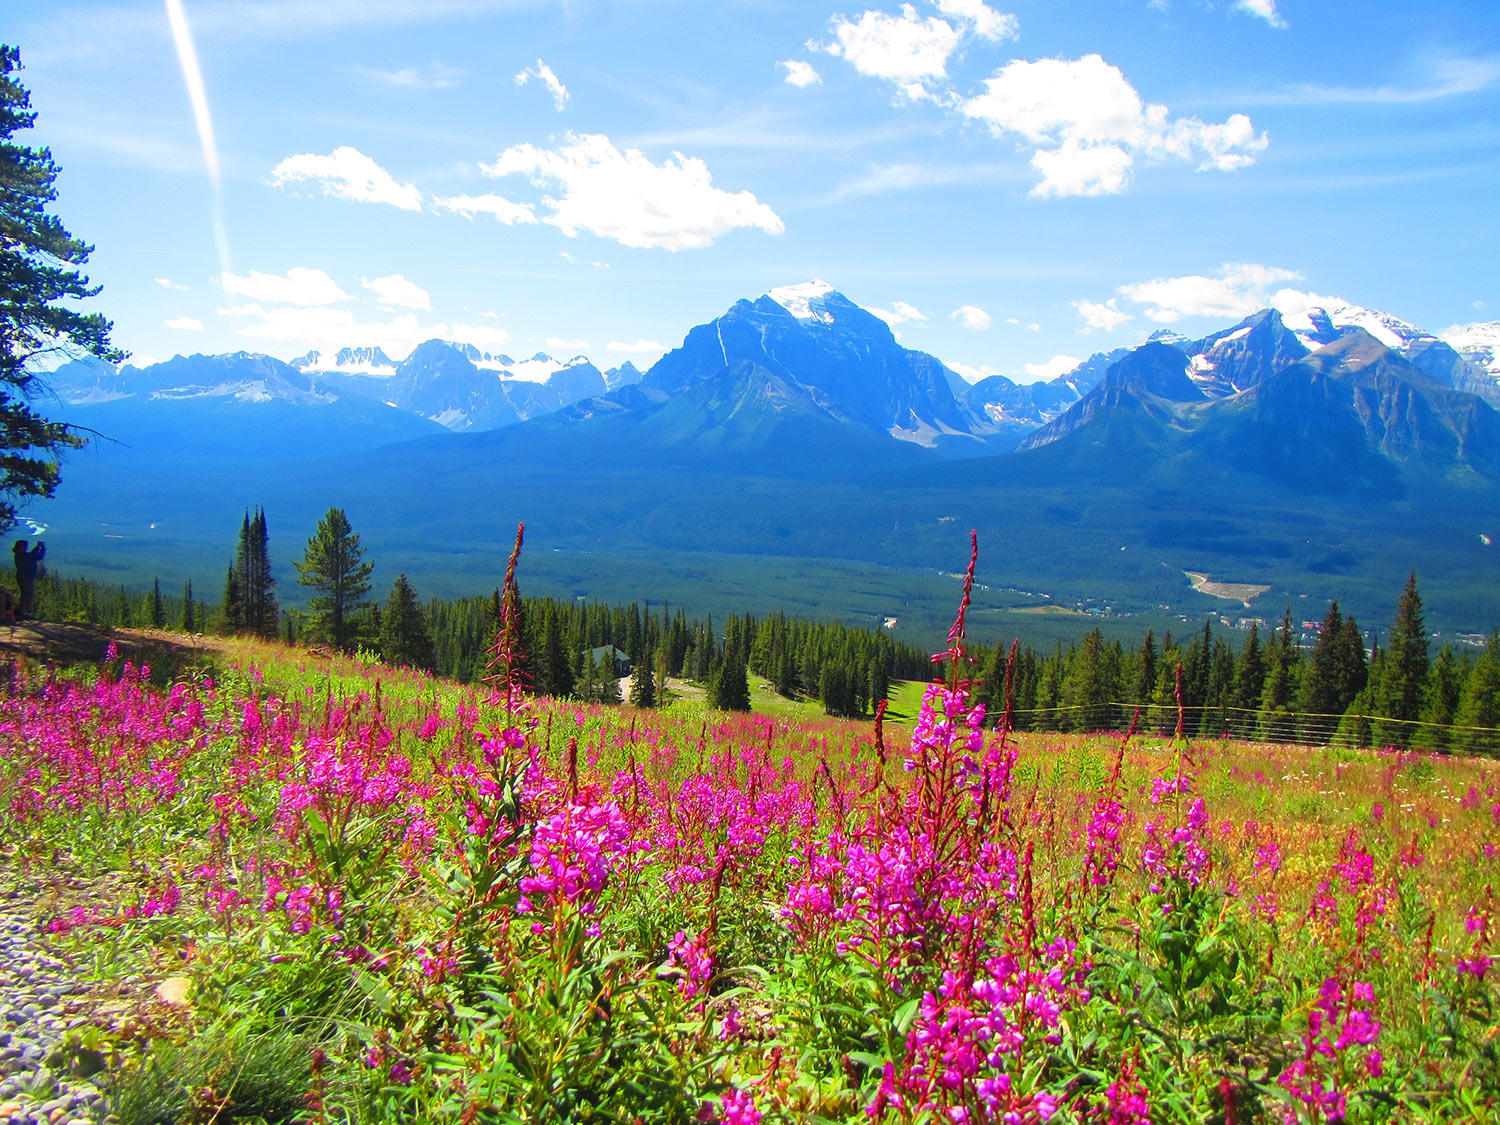 Fireweed in alpine meadow in the rocky mountains